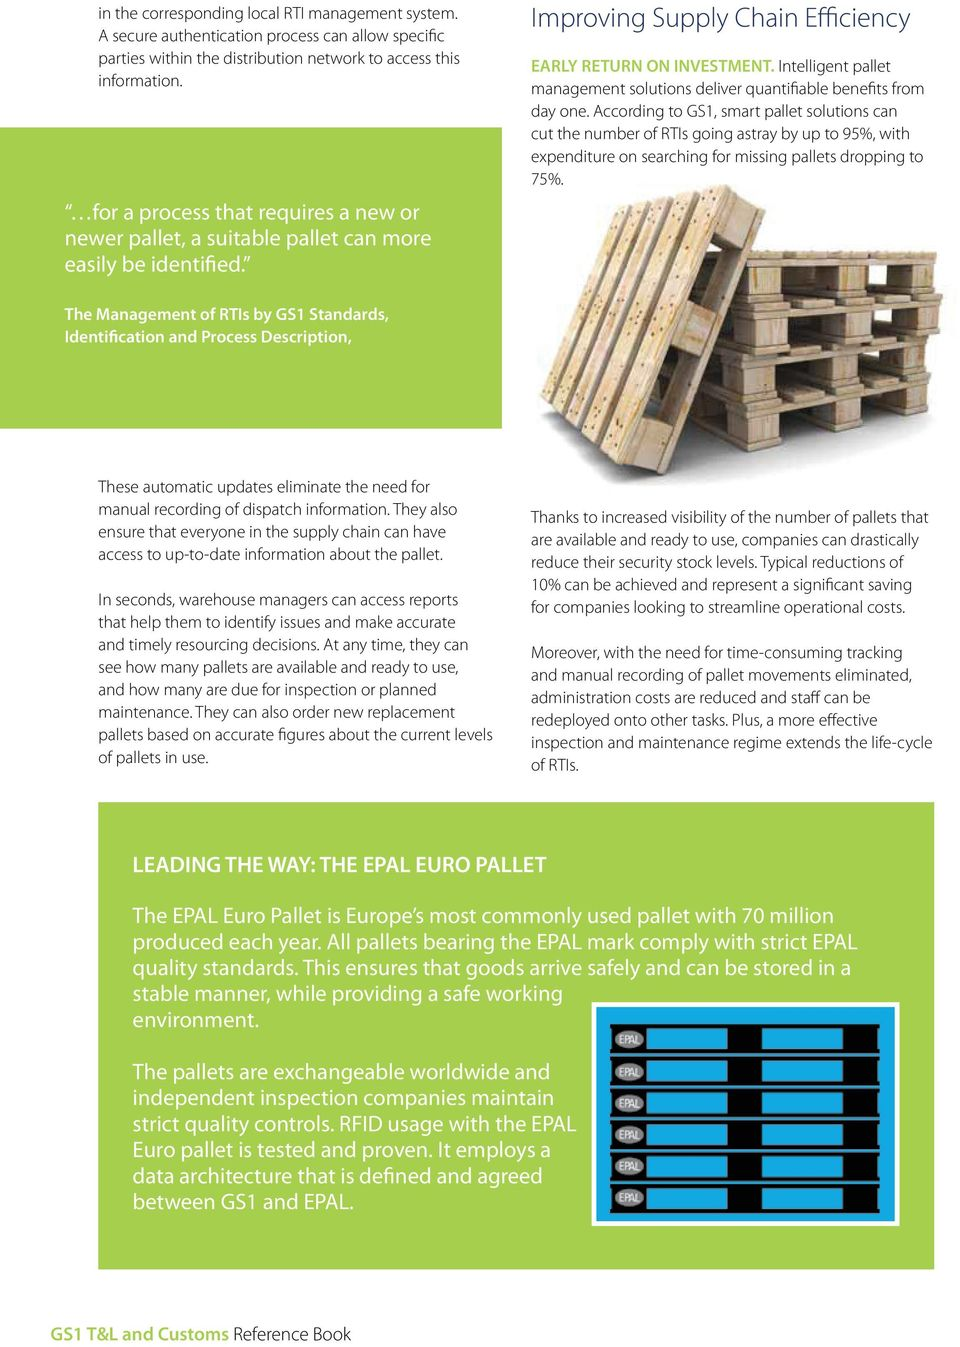 Intelligent pallet management solutions deliver quantifiable benefits from day one.